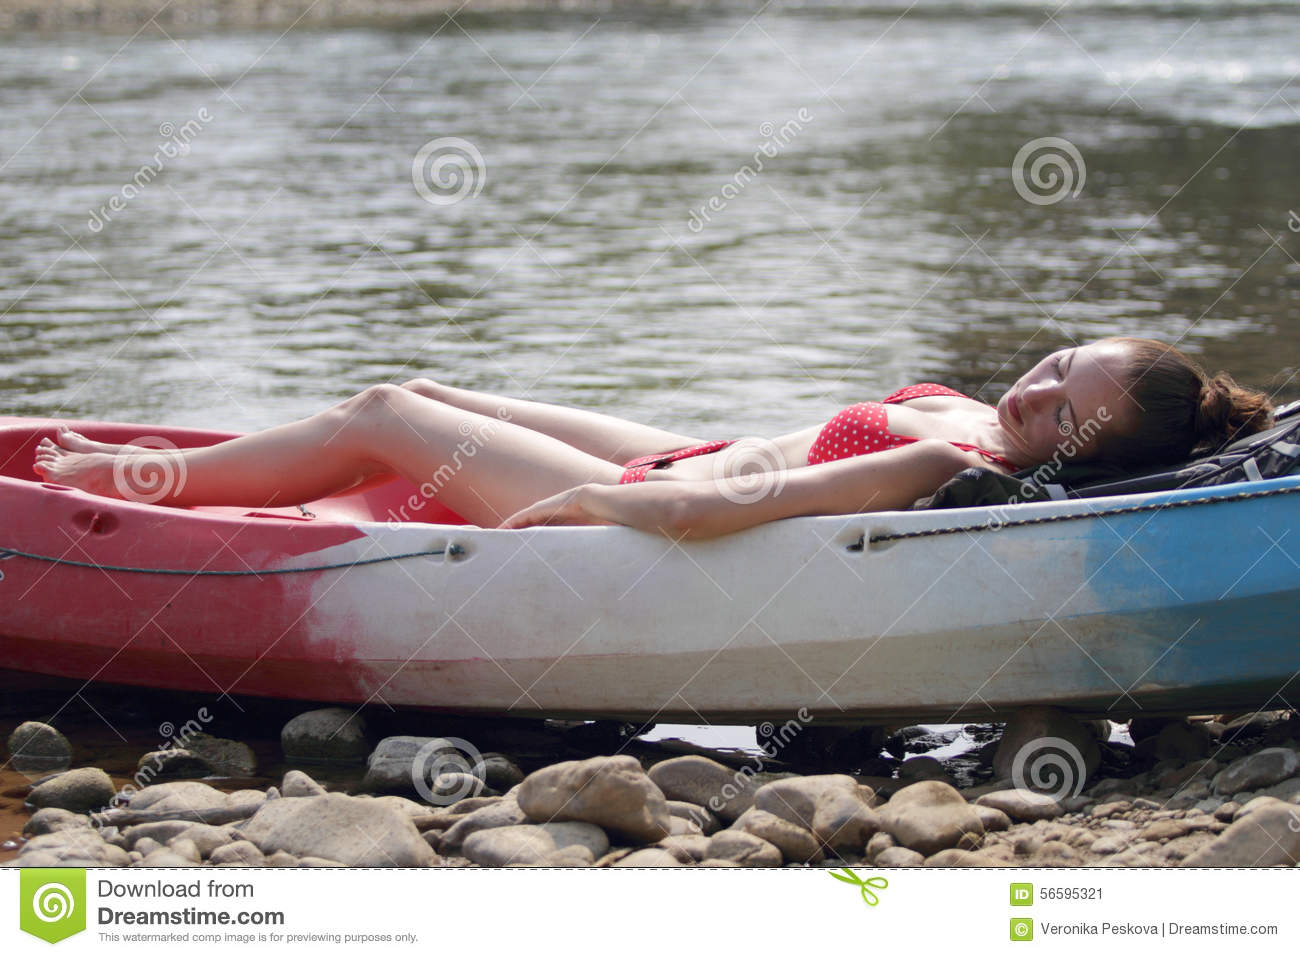 A young girl in bikini lying on the boat and sunbathing near the river, enjoying holidays in Laos